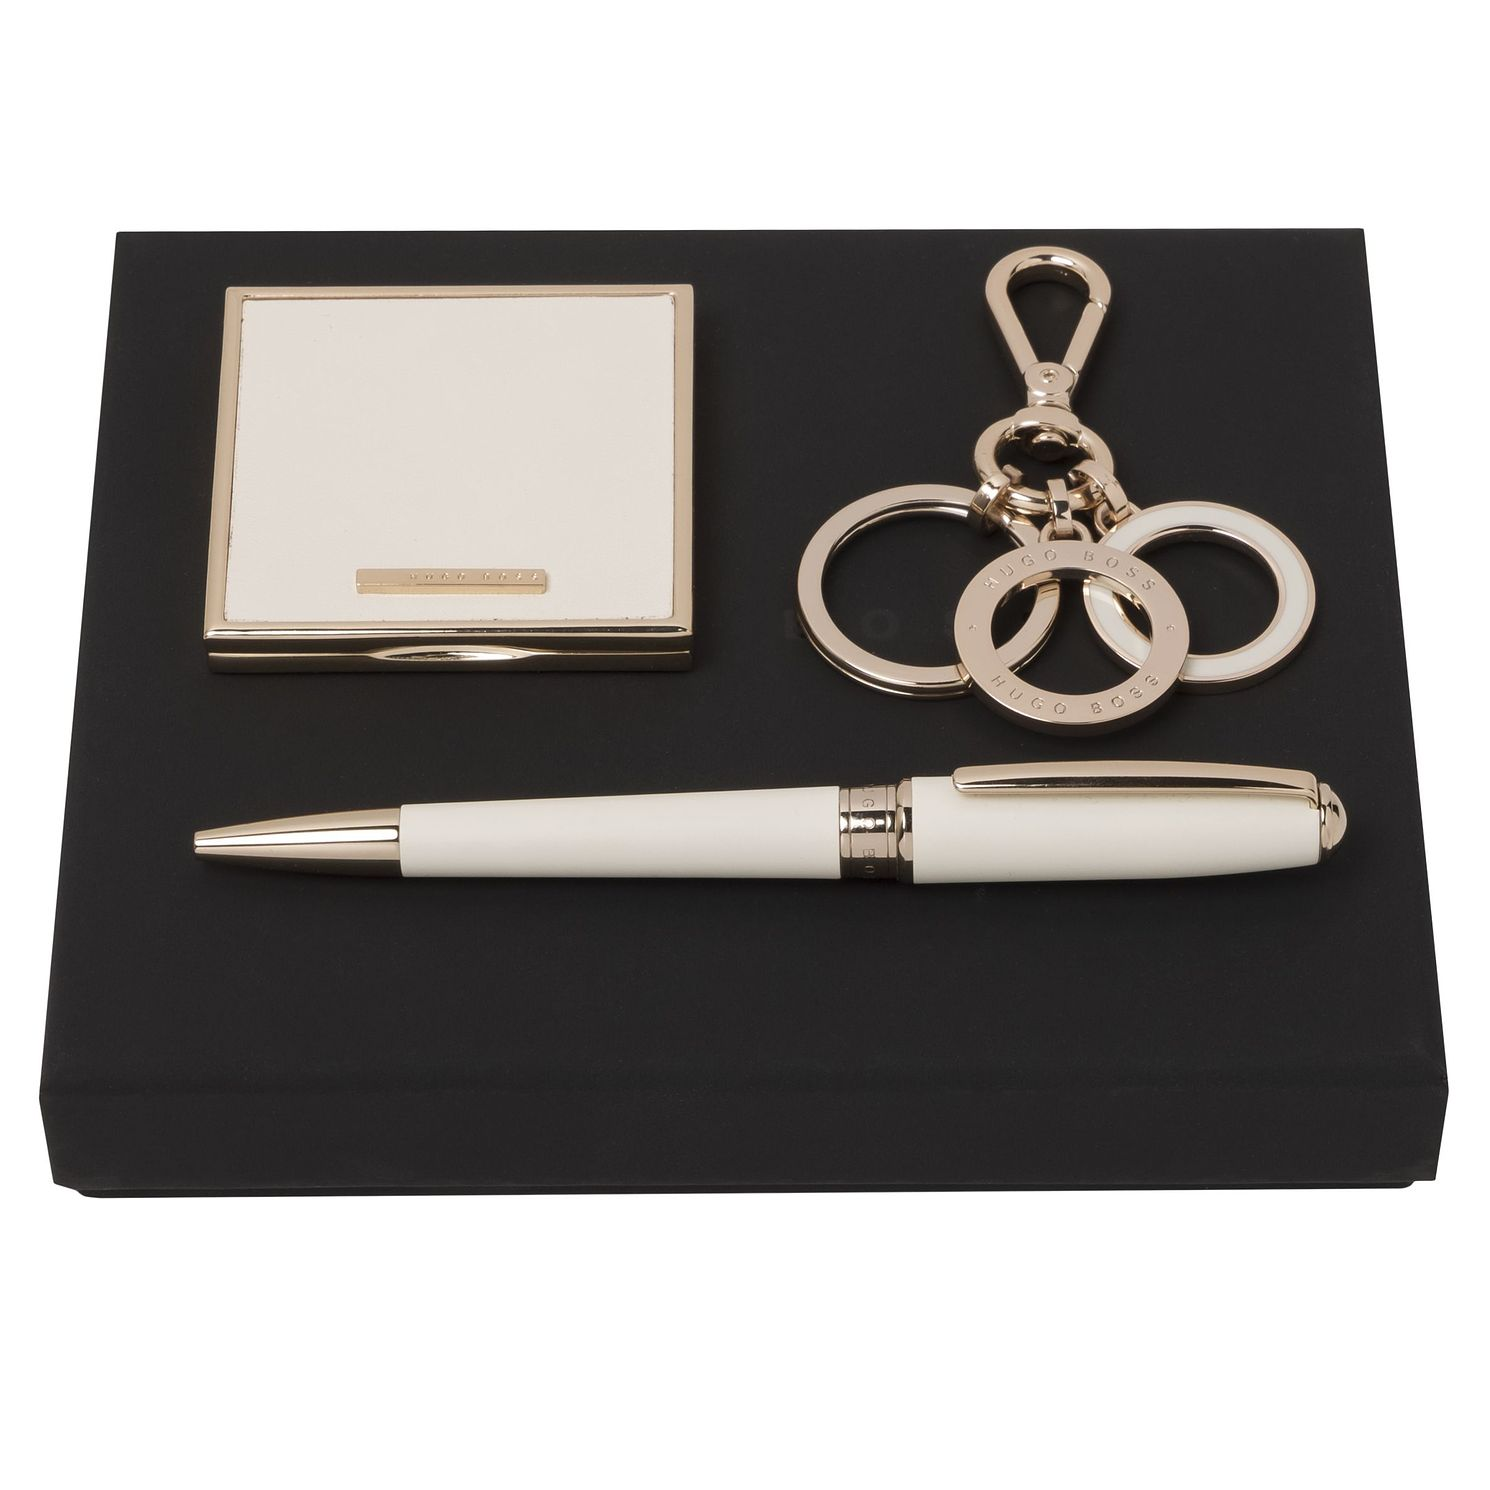 BOSS Ladies' White Ballpoint Pen & Mirror Gift Set - Product number 2002752